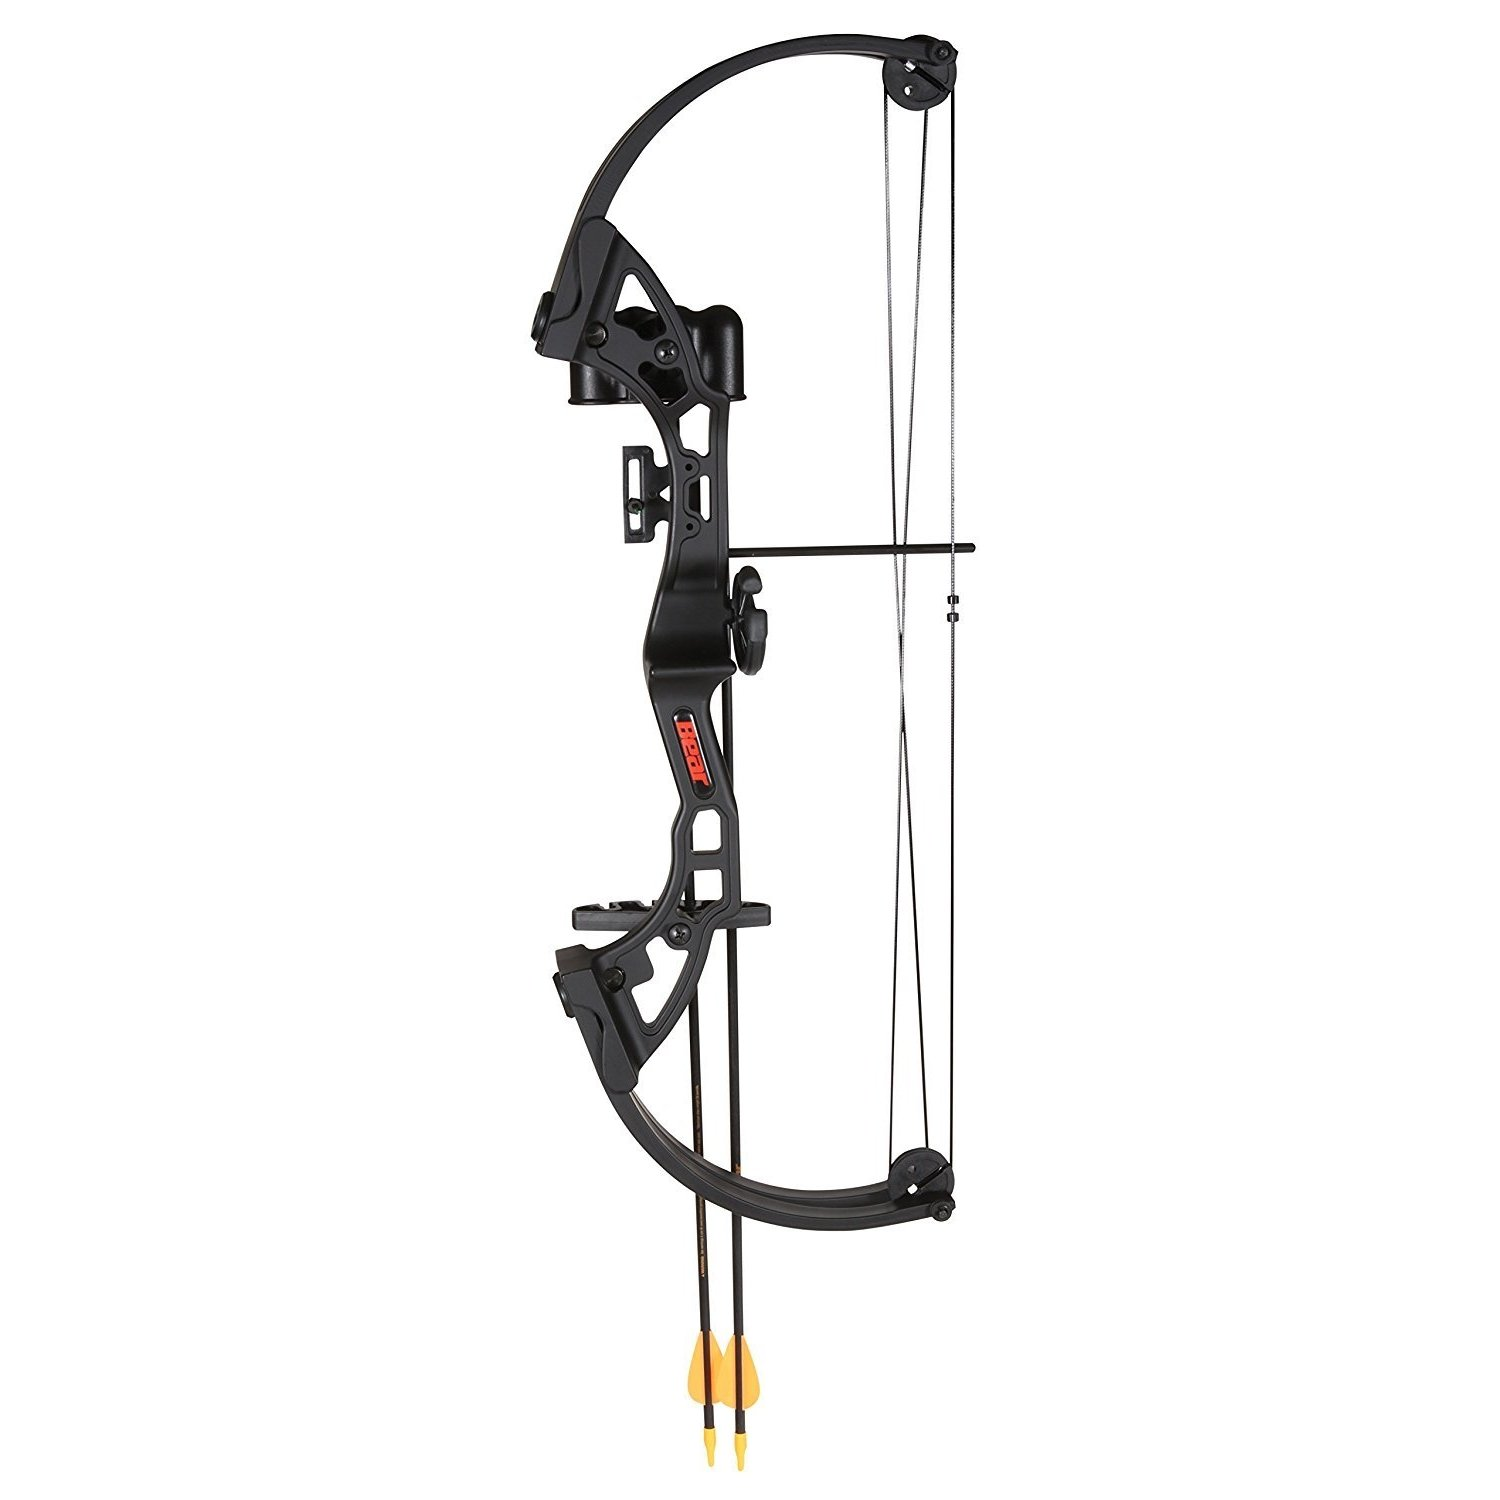 By-Ear Archery Compound Bow Set, Youth Girls Boys Practice Kids Compound Bow, Black